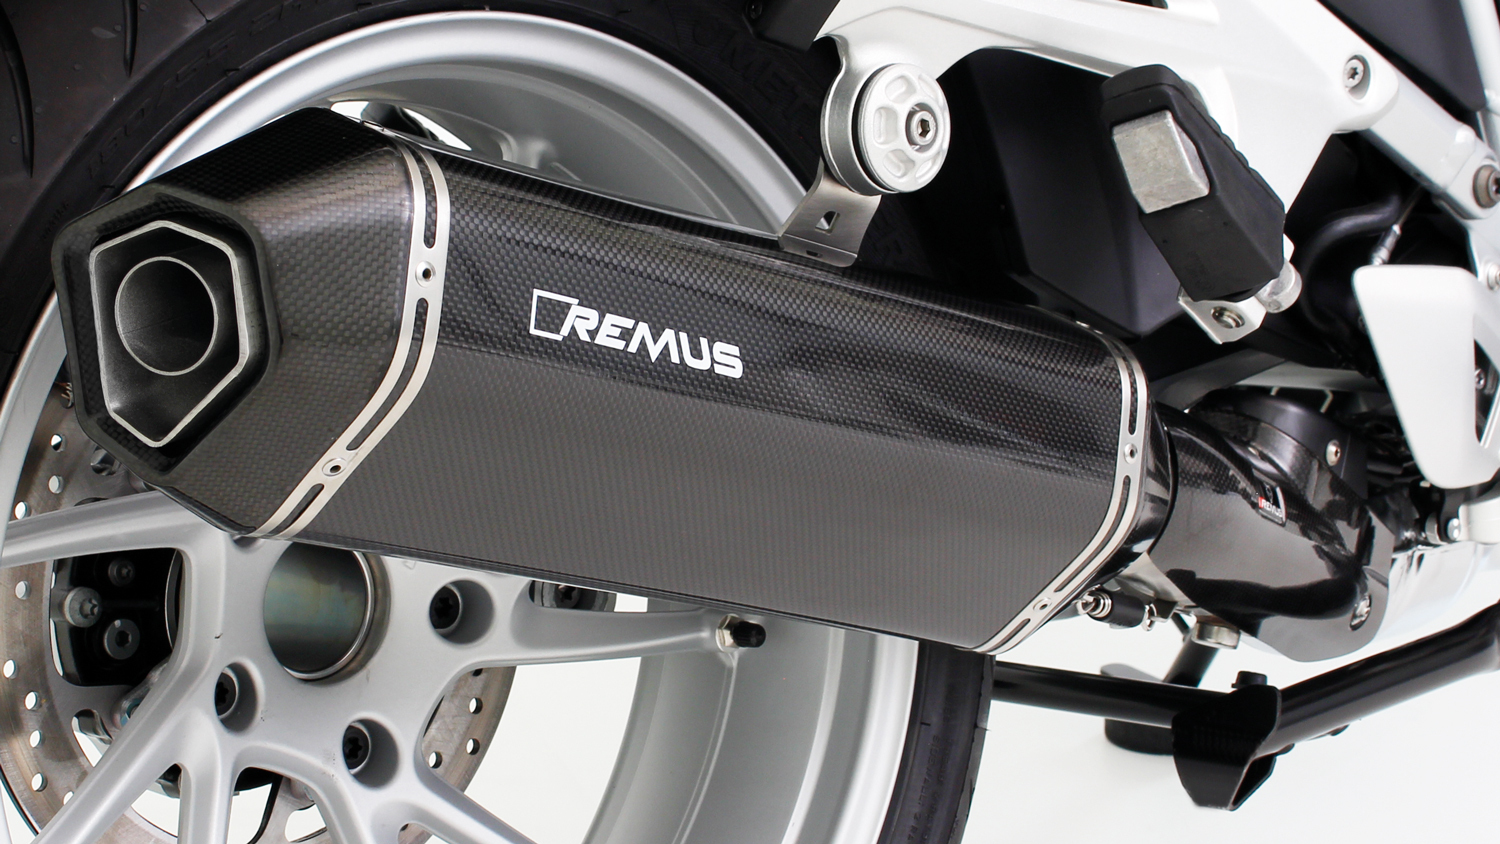 REMUS HEXACONE silencer carbon BMW R 1200 RT from 2017, EEC - Image 3